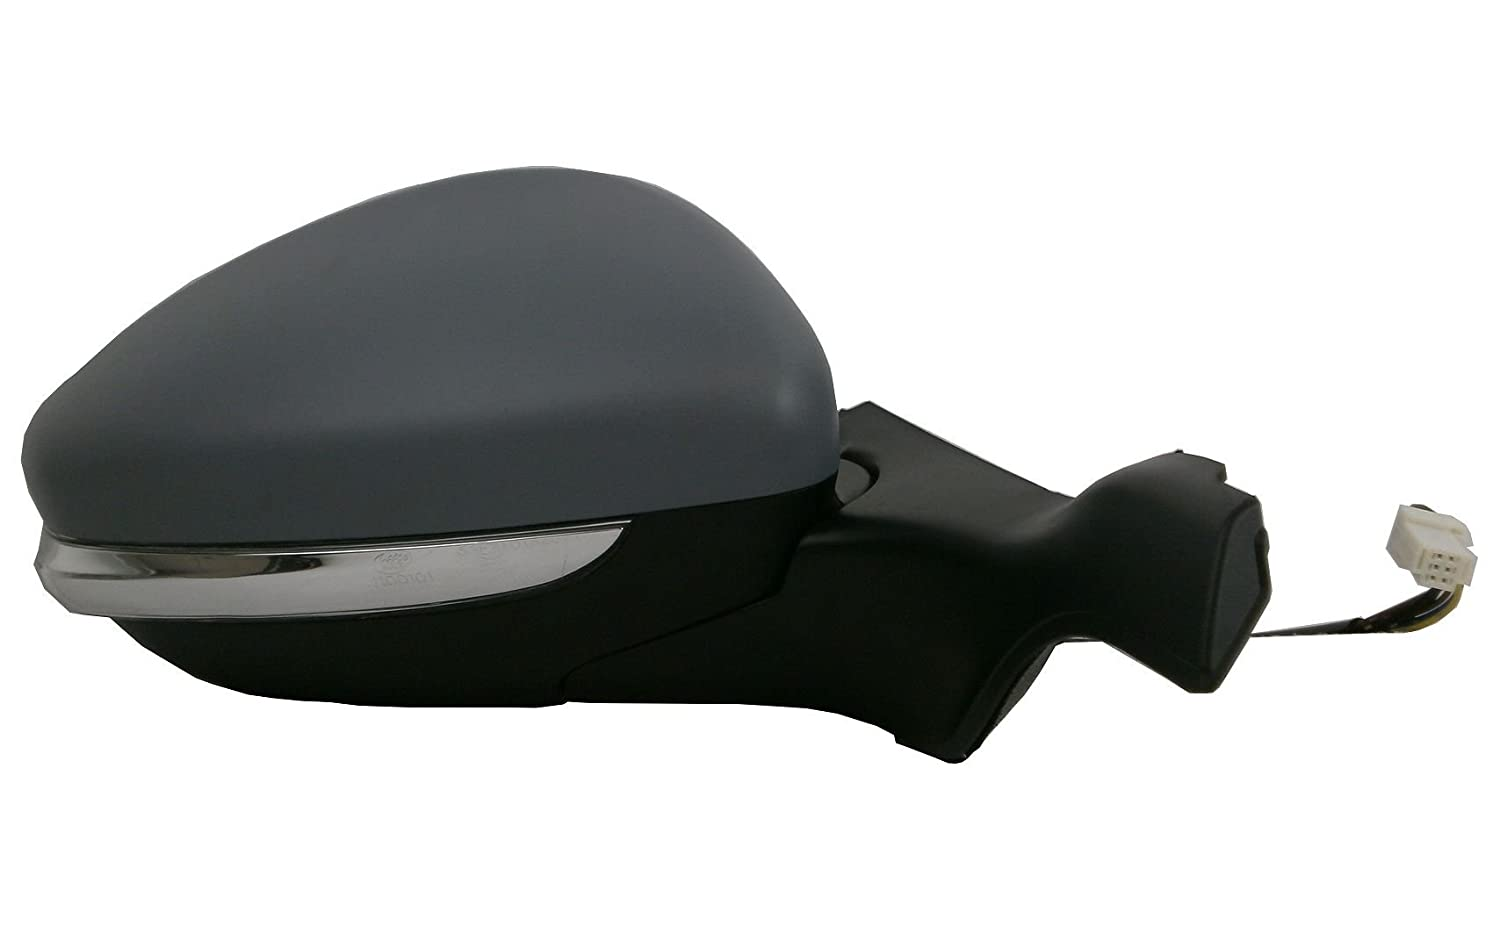 OS Driver Side Right Door Wing Mirror Electric Glass Black Primed Cover